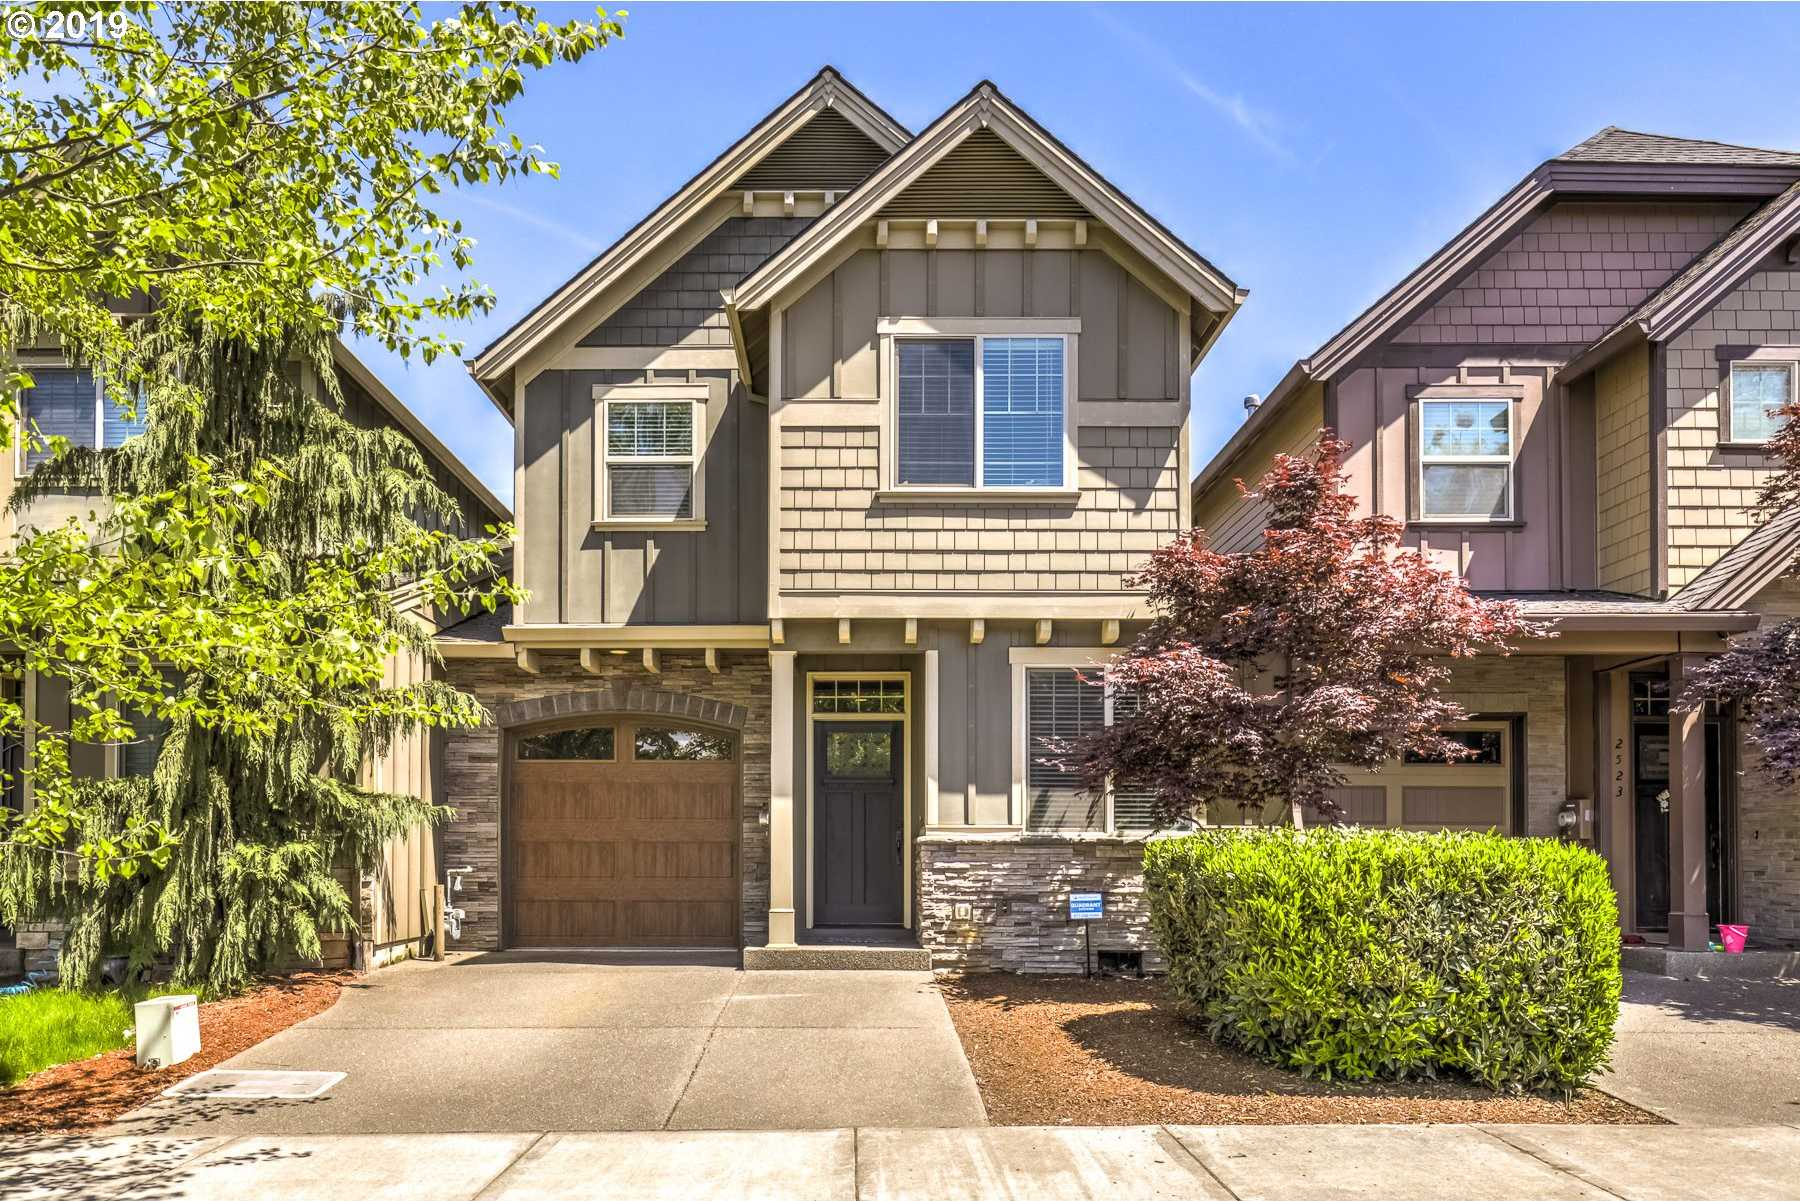 $337,000 - 4Br/3Ba -  for Sale in Williams Meadow, Forest Grove